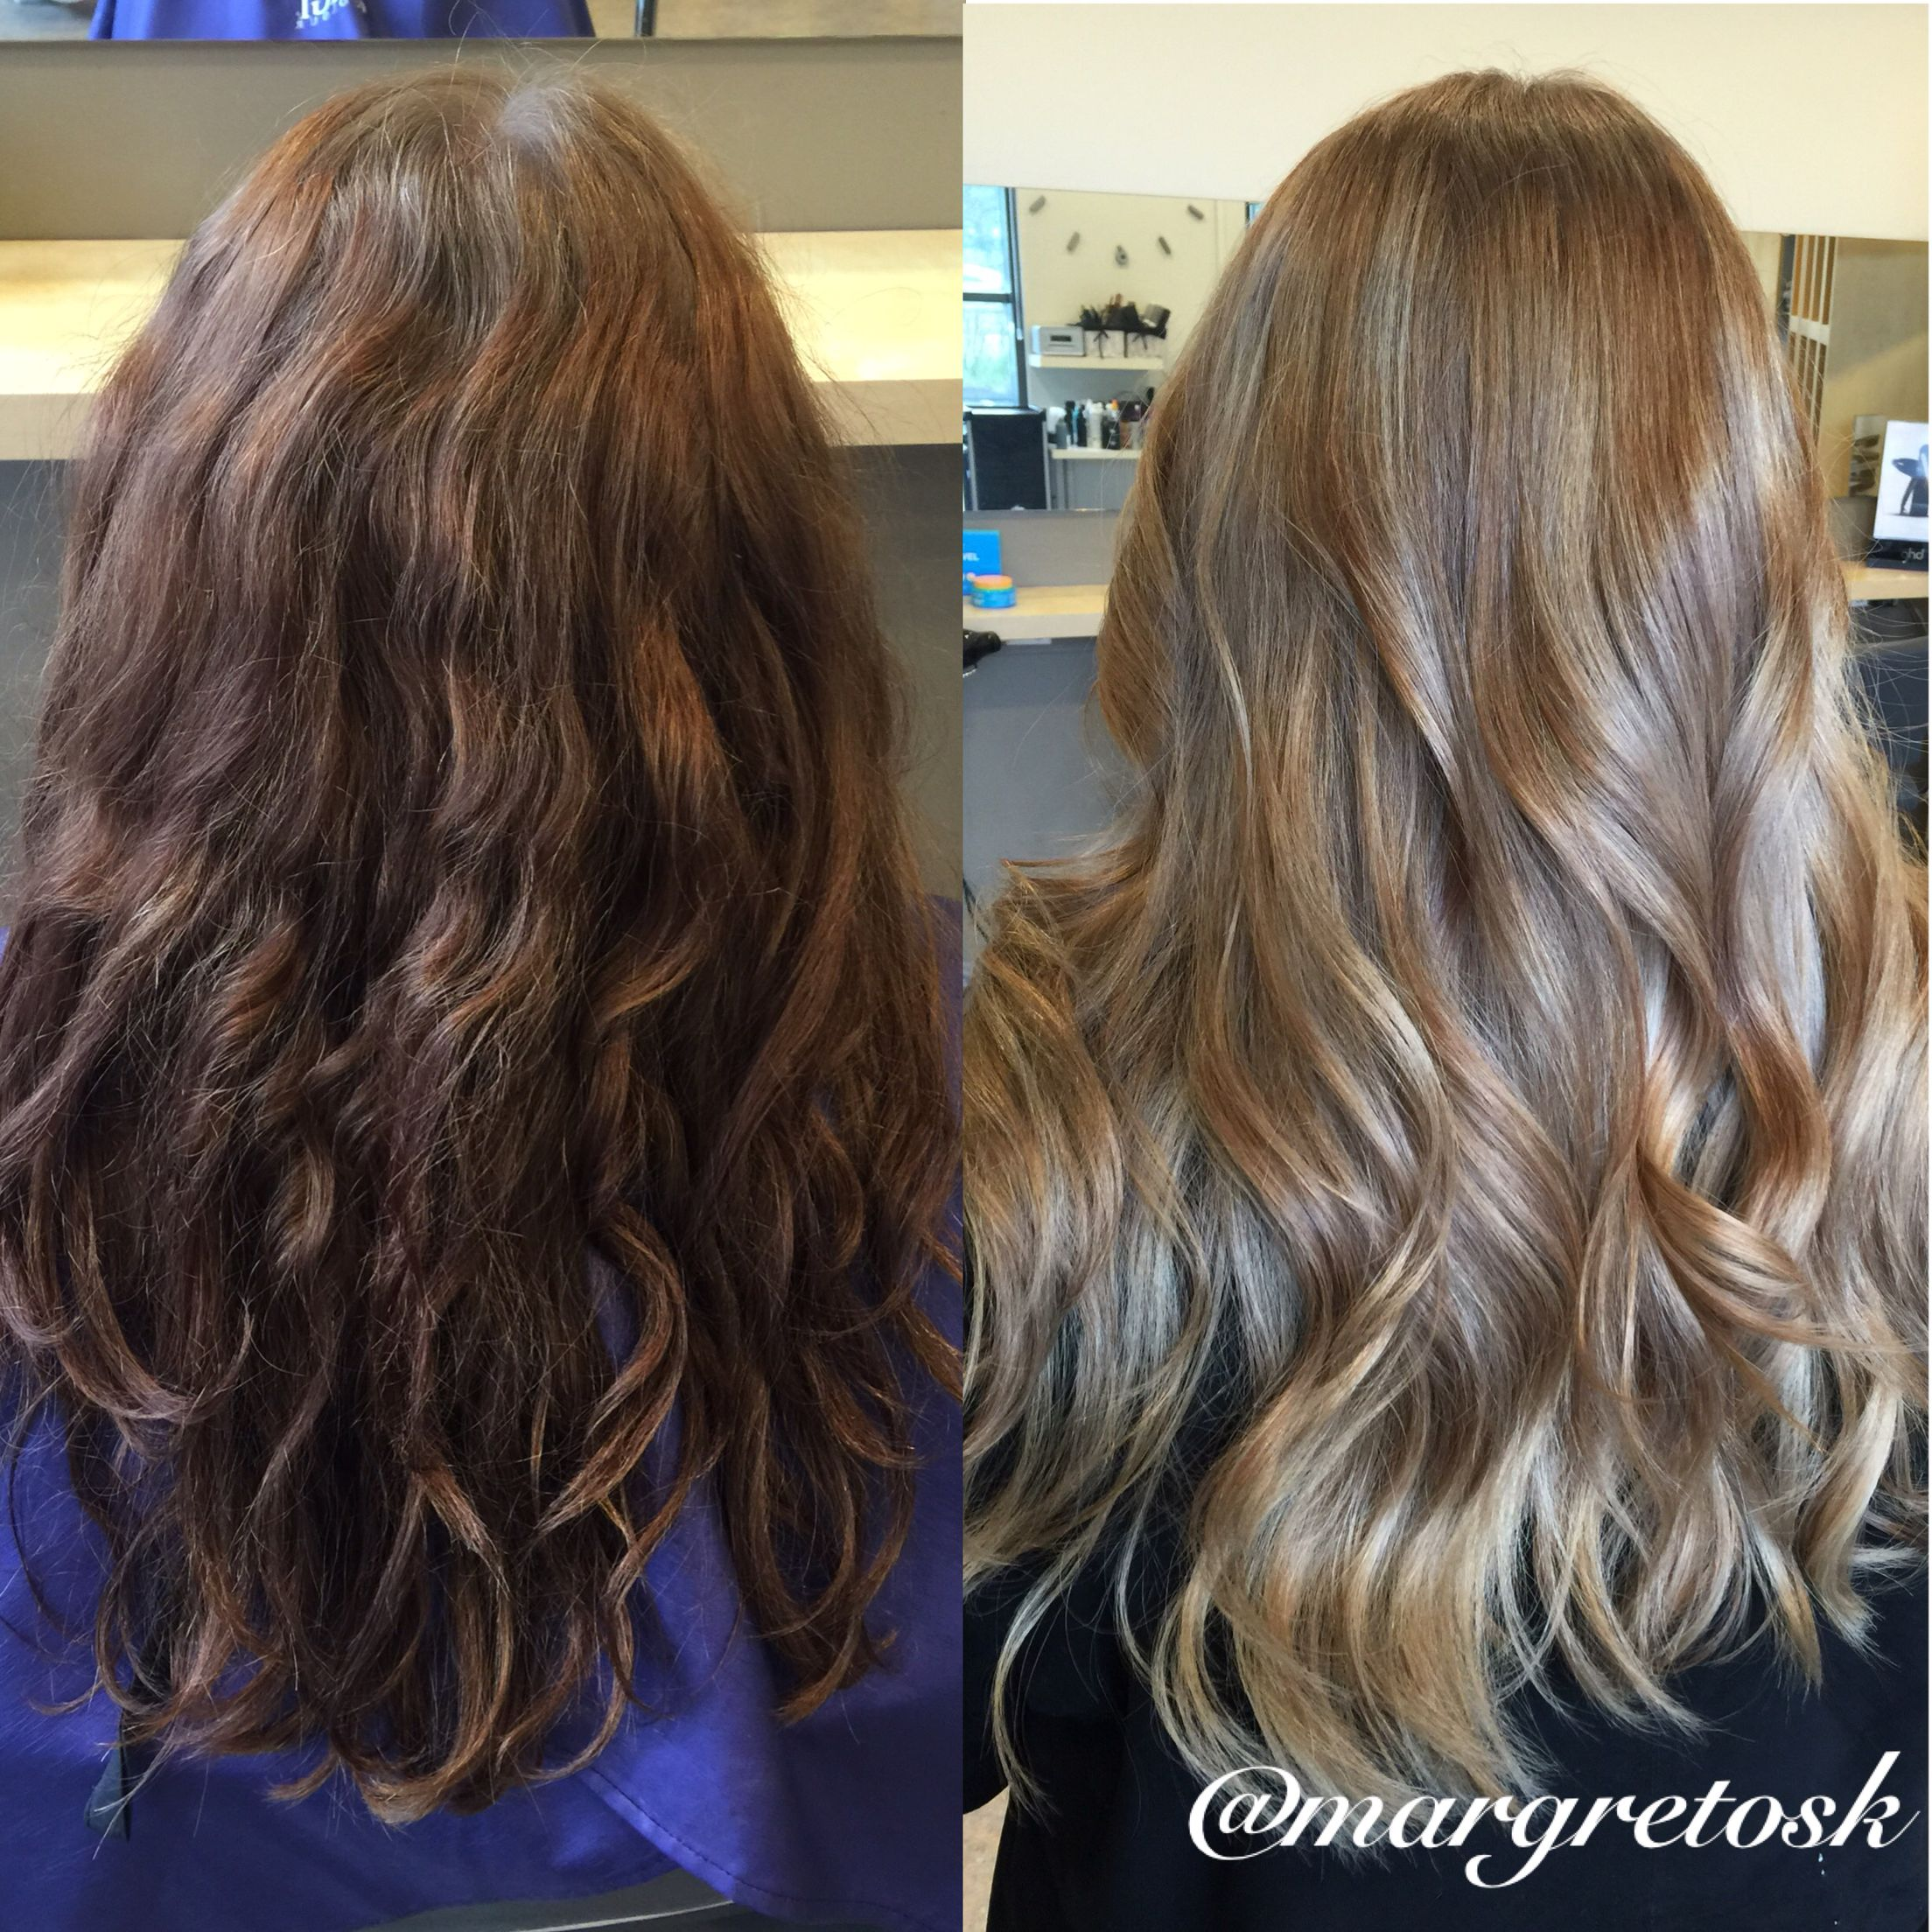 Before And After Coloring From Dark Brown To A Softer More